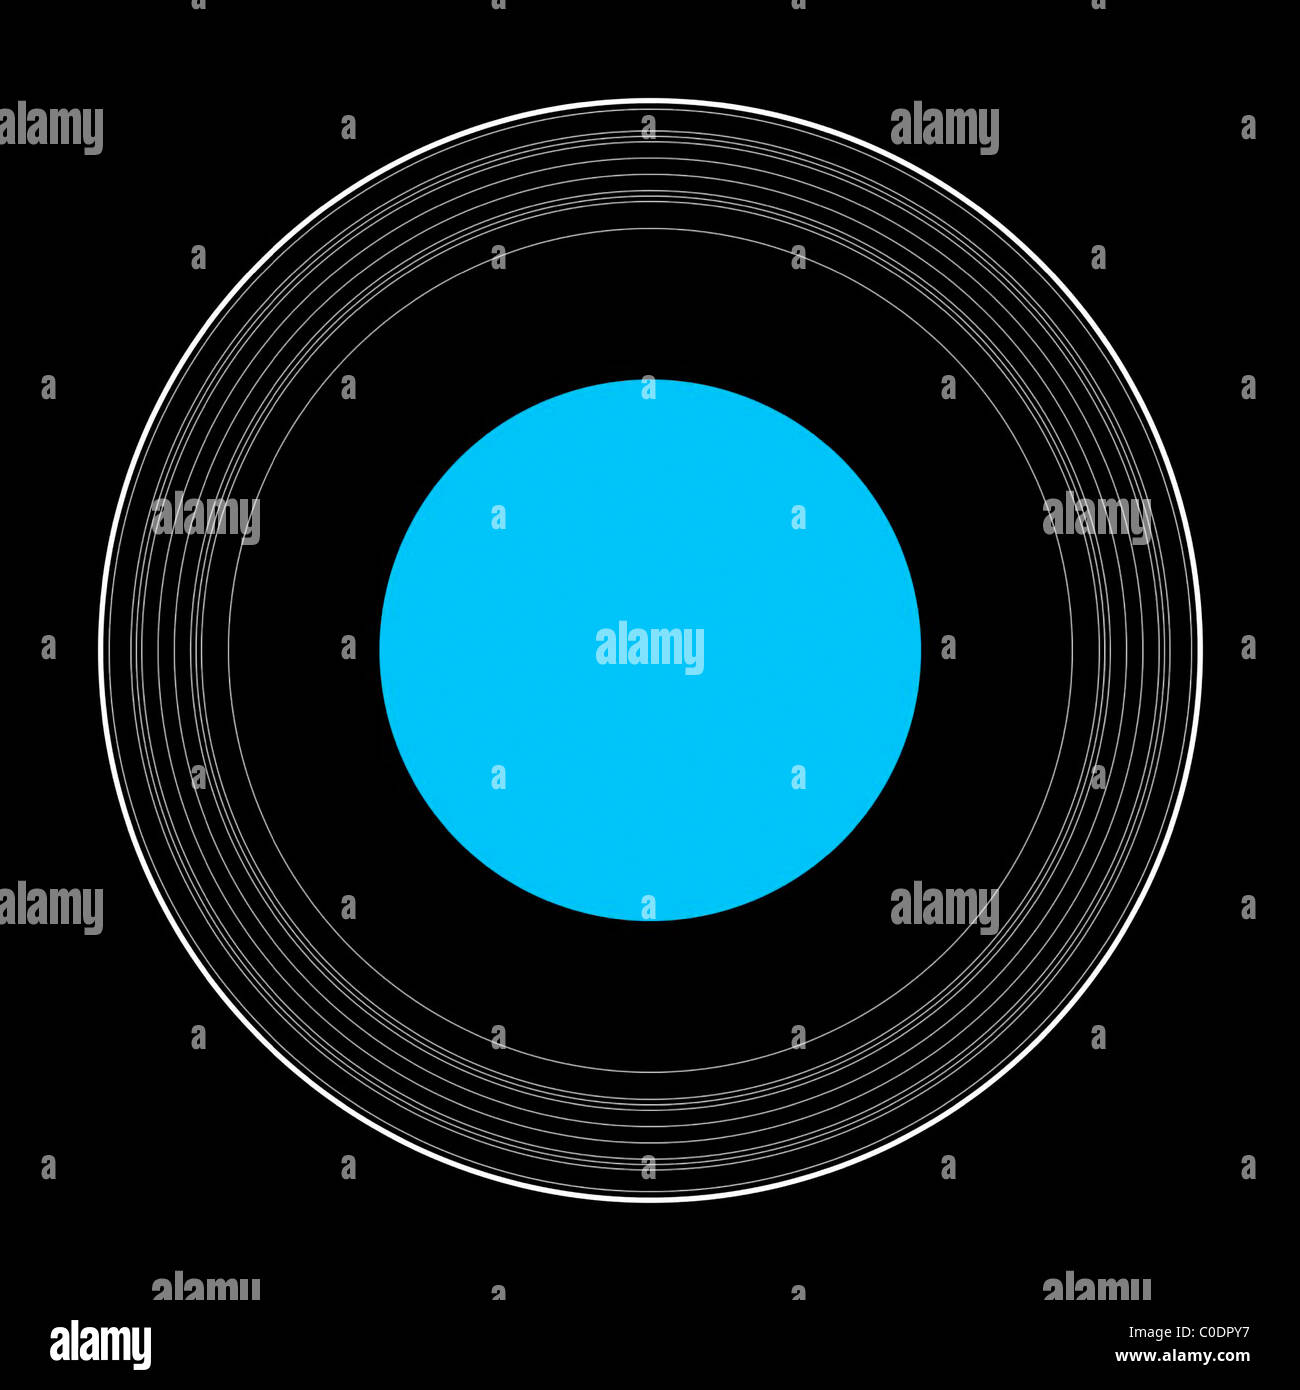 hight resolution of an illustration showing the details of the rings of uranus stock image